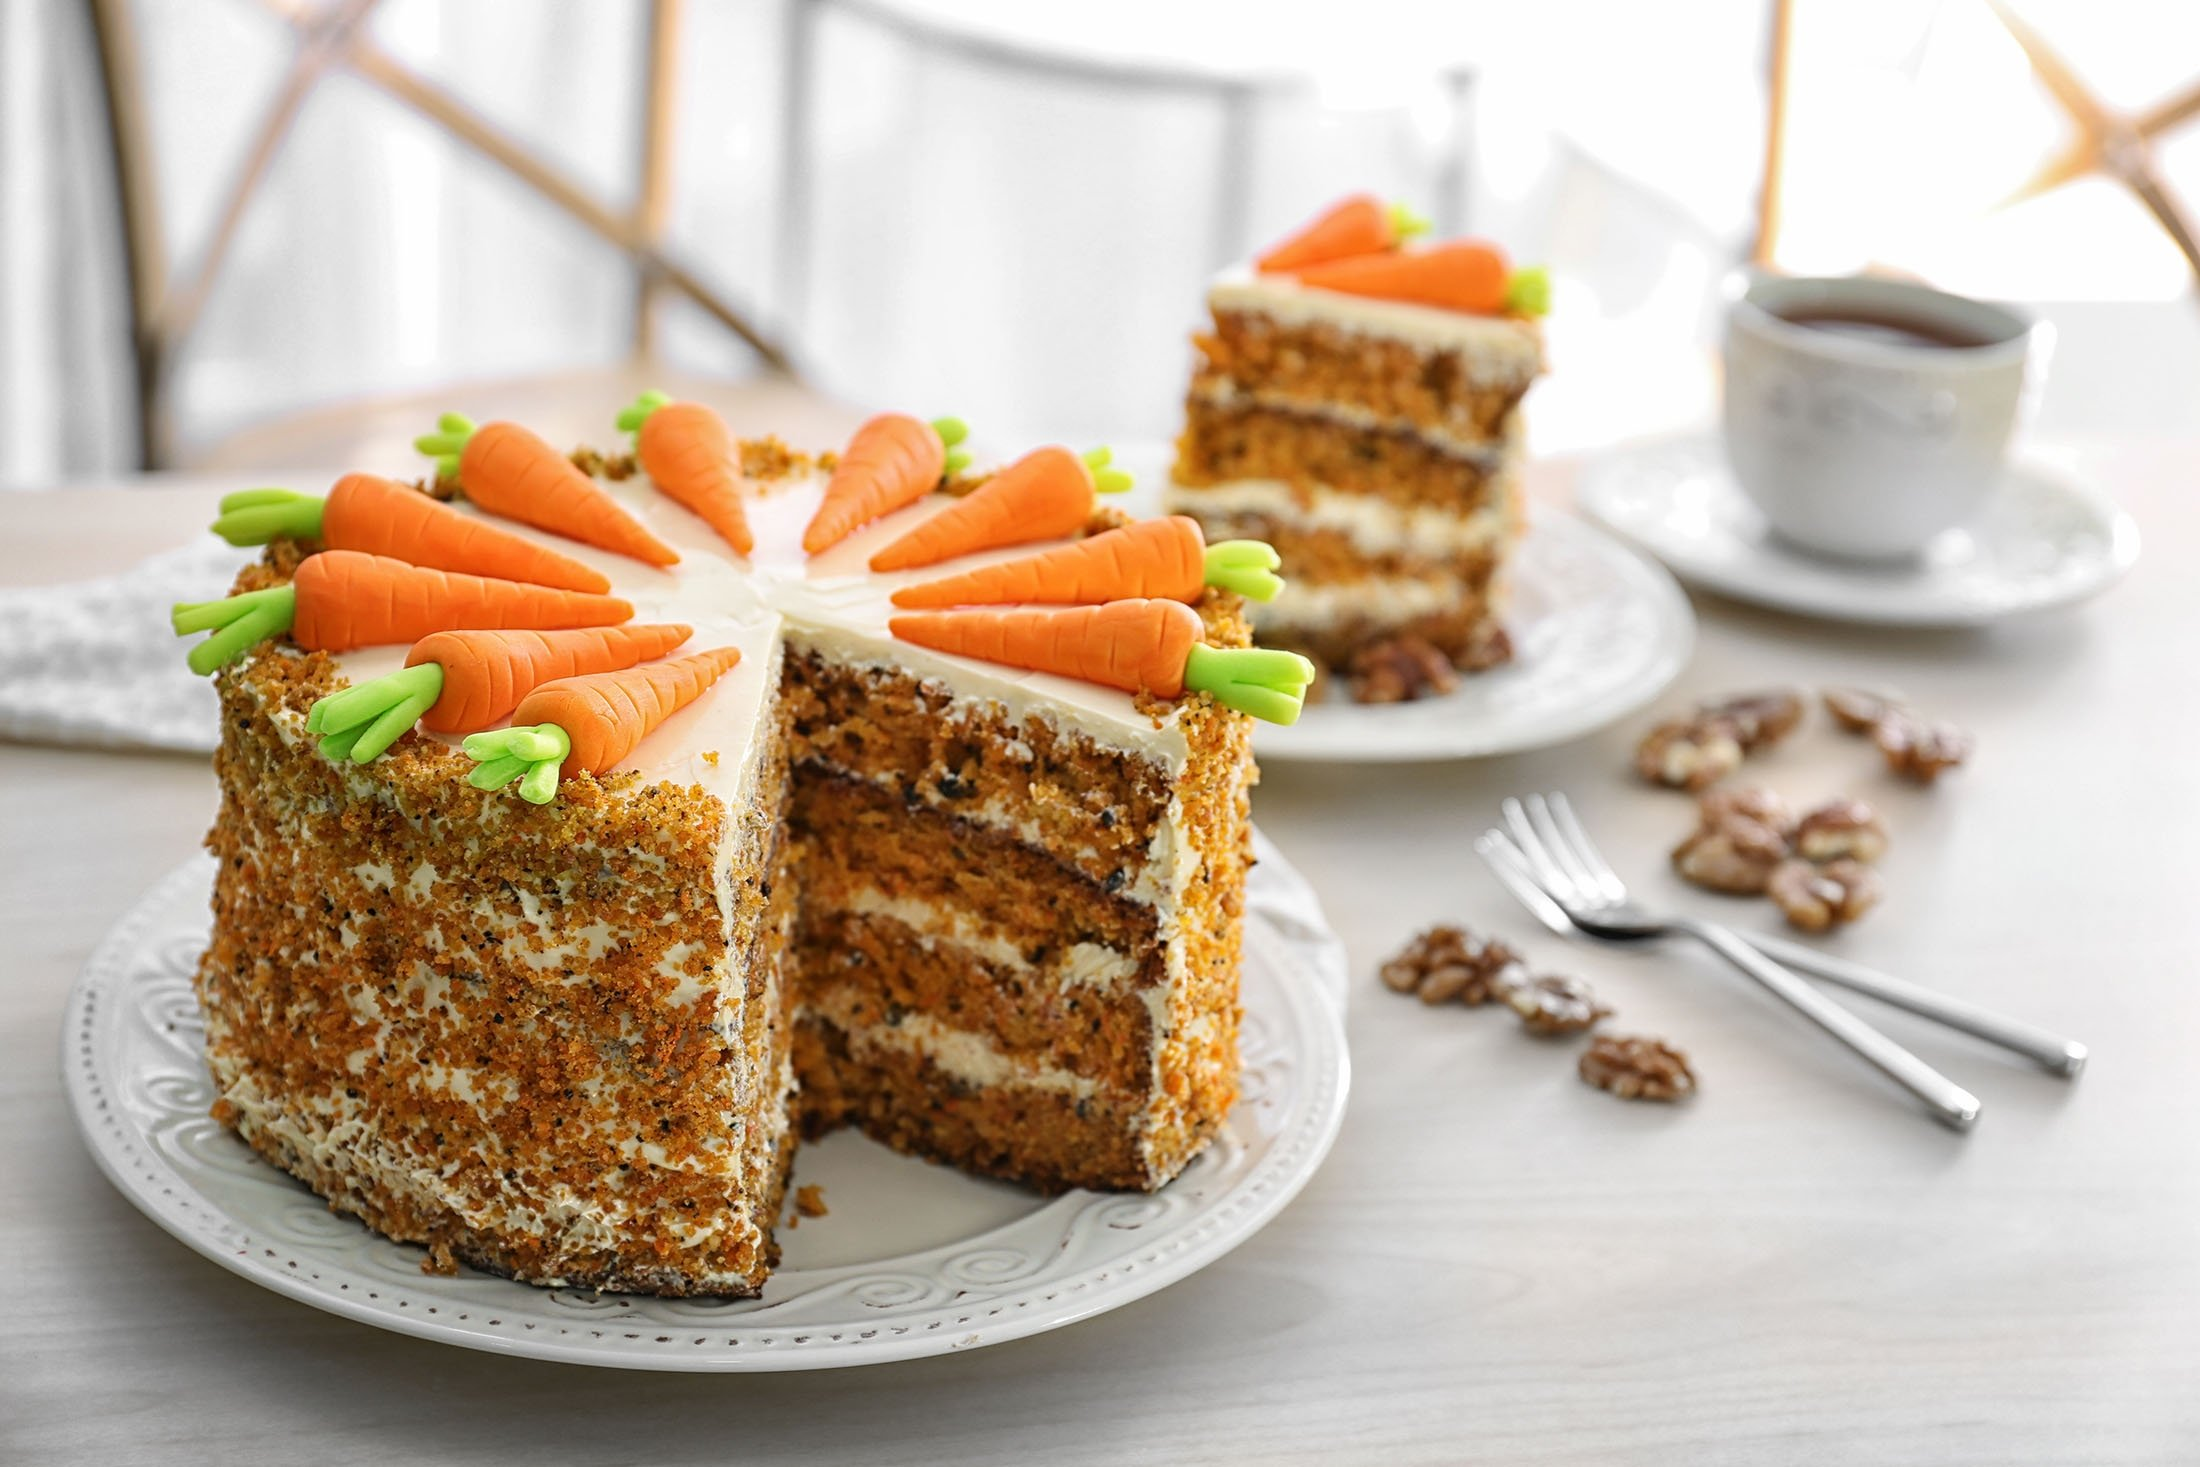 With some simple icing and marzipan carrots, you can transform a basic carrot cake into the perfect party food. (Shutterstock Photo)